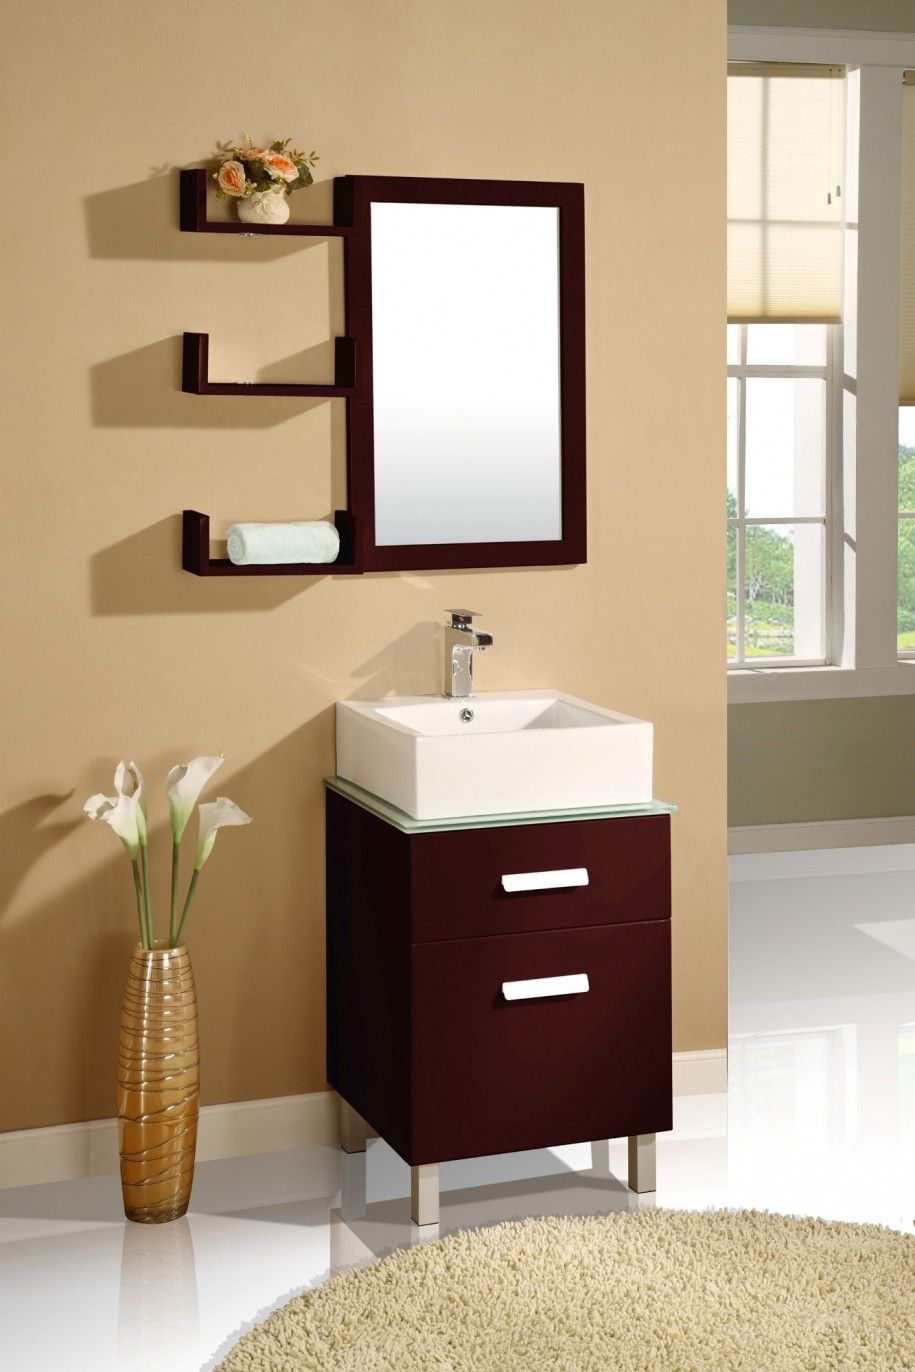 Bathroom sink and mirror - Simple Dark Wood Bathroom Mirrors With Shelves And Small Dark Wood Vanity Cabinet And White Wash Basin For Contemporary Bathroom Accessories Add Bathroom